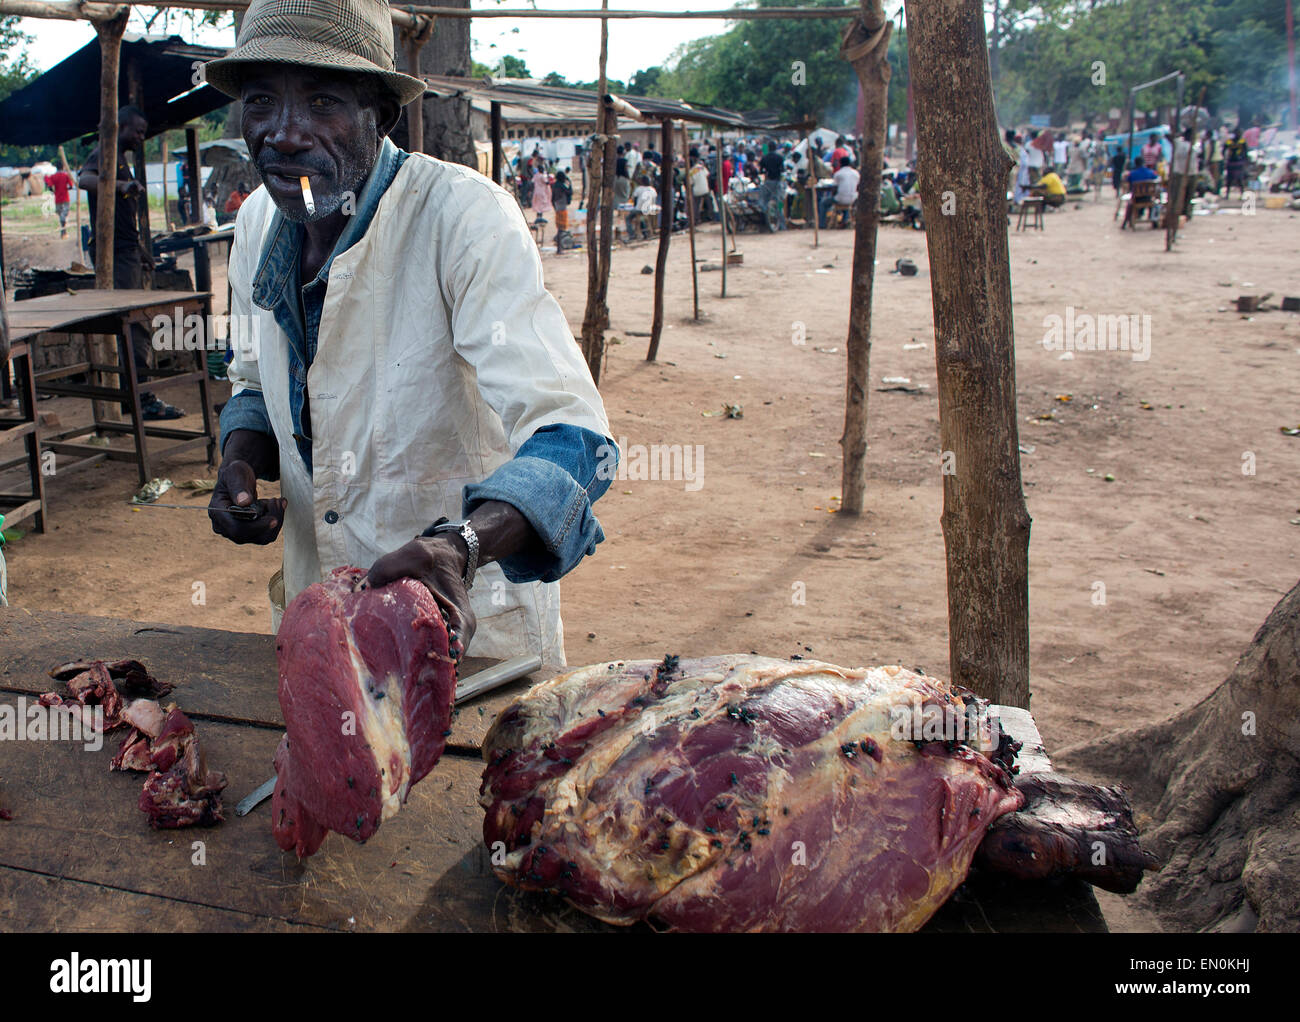 meat market stock images - photo #38